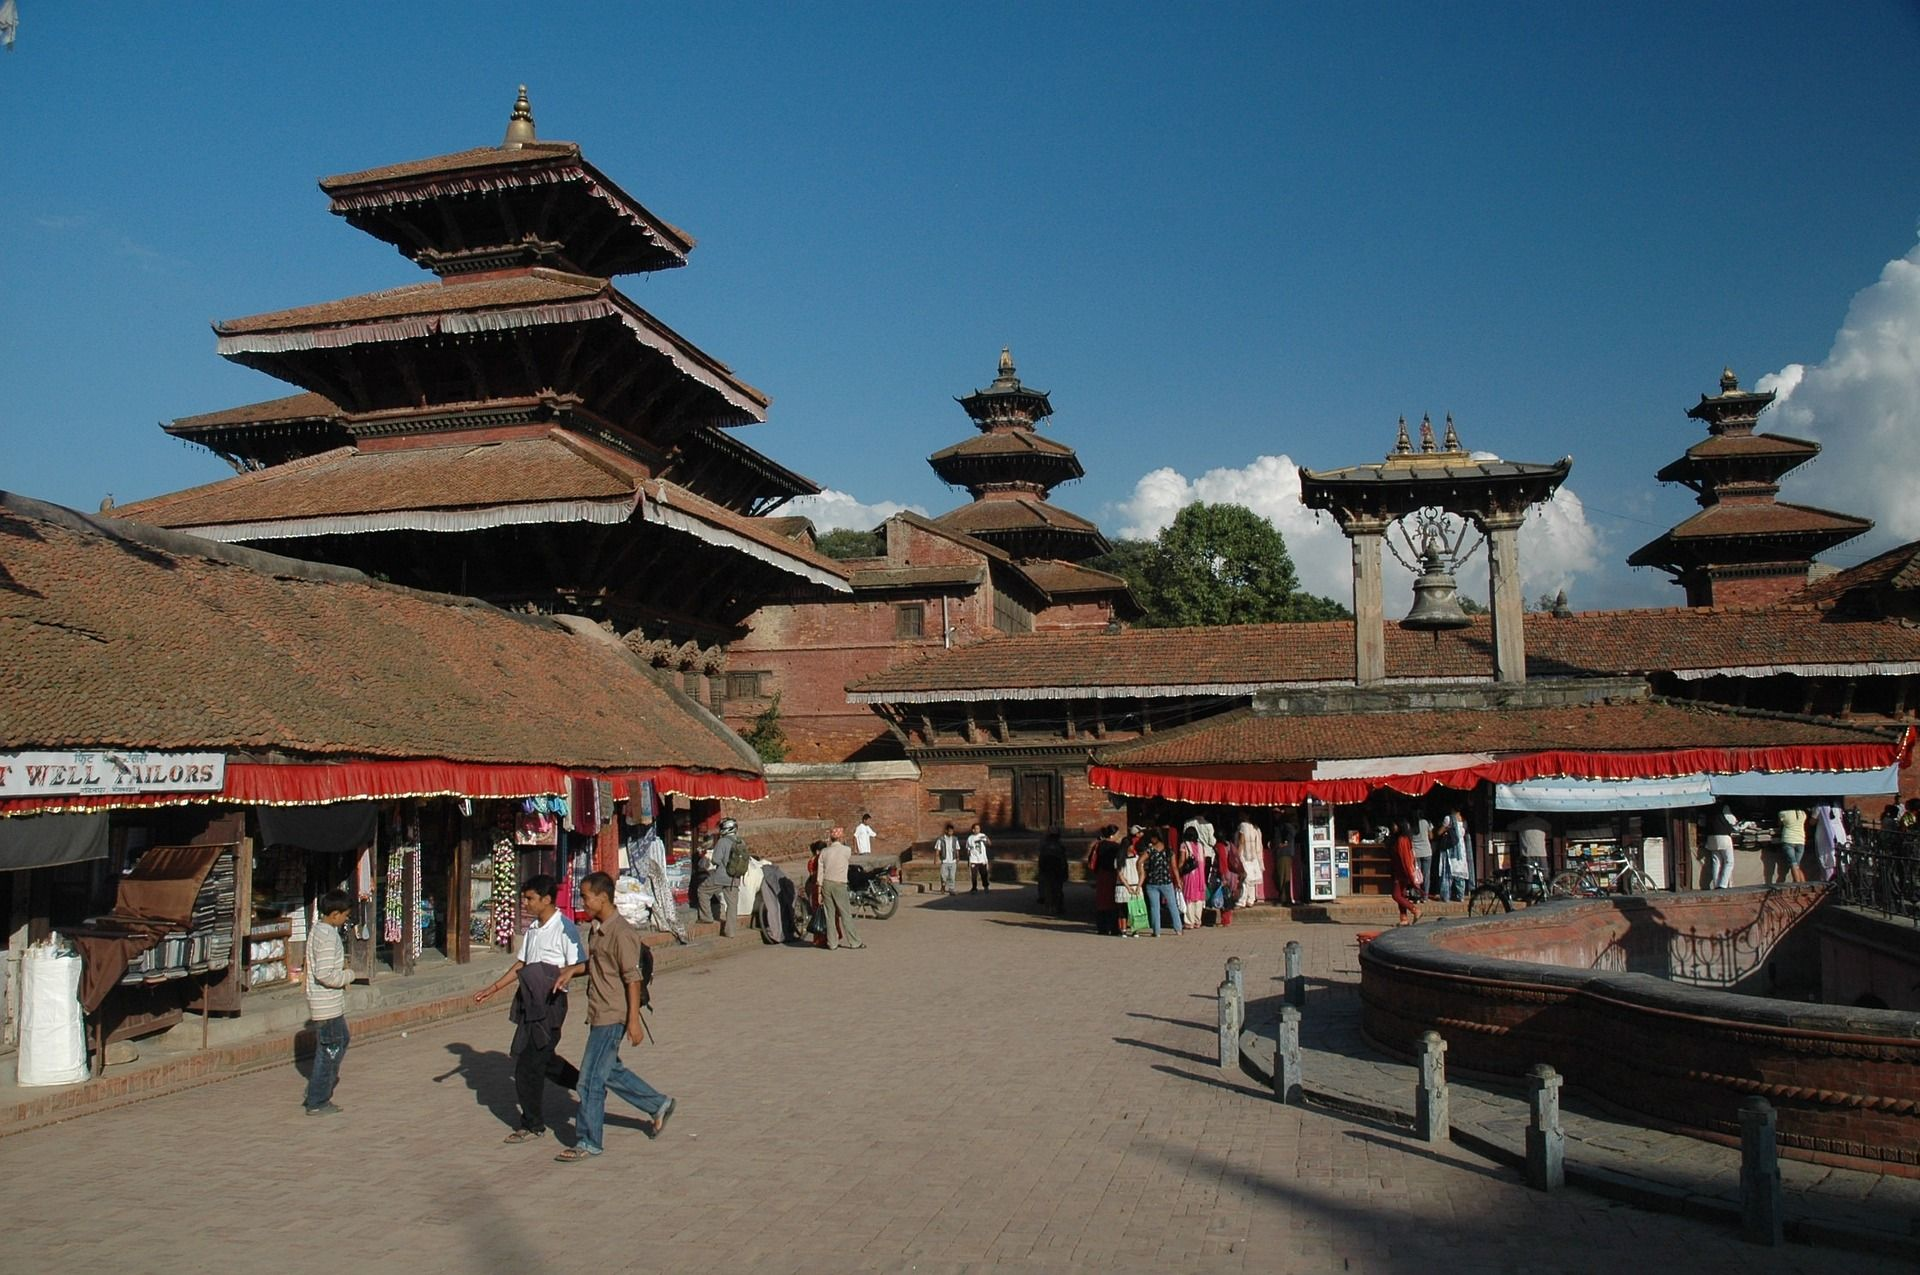 15 Things You Probably Didn't Know About Nepal